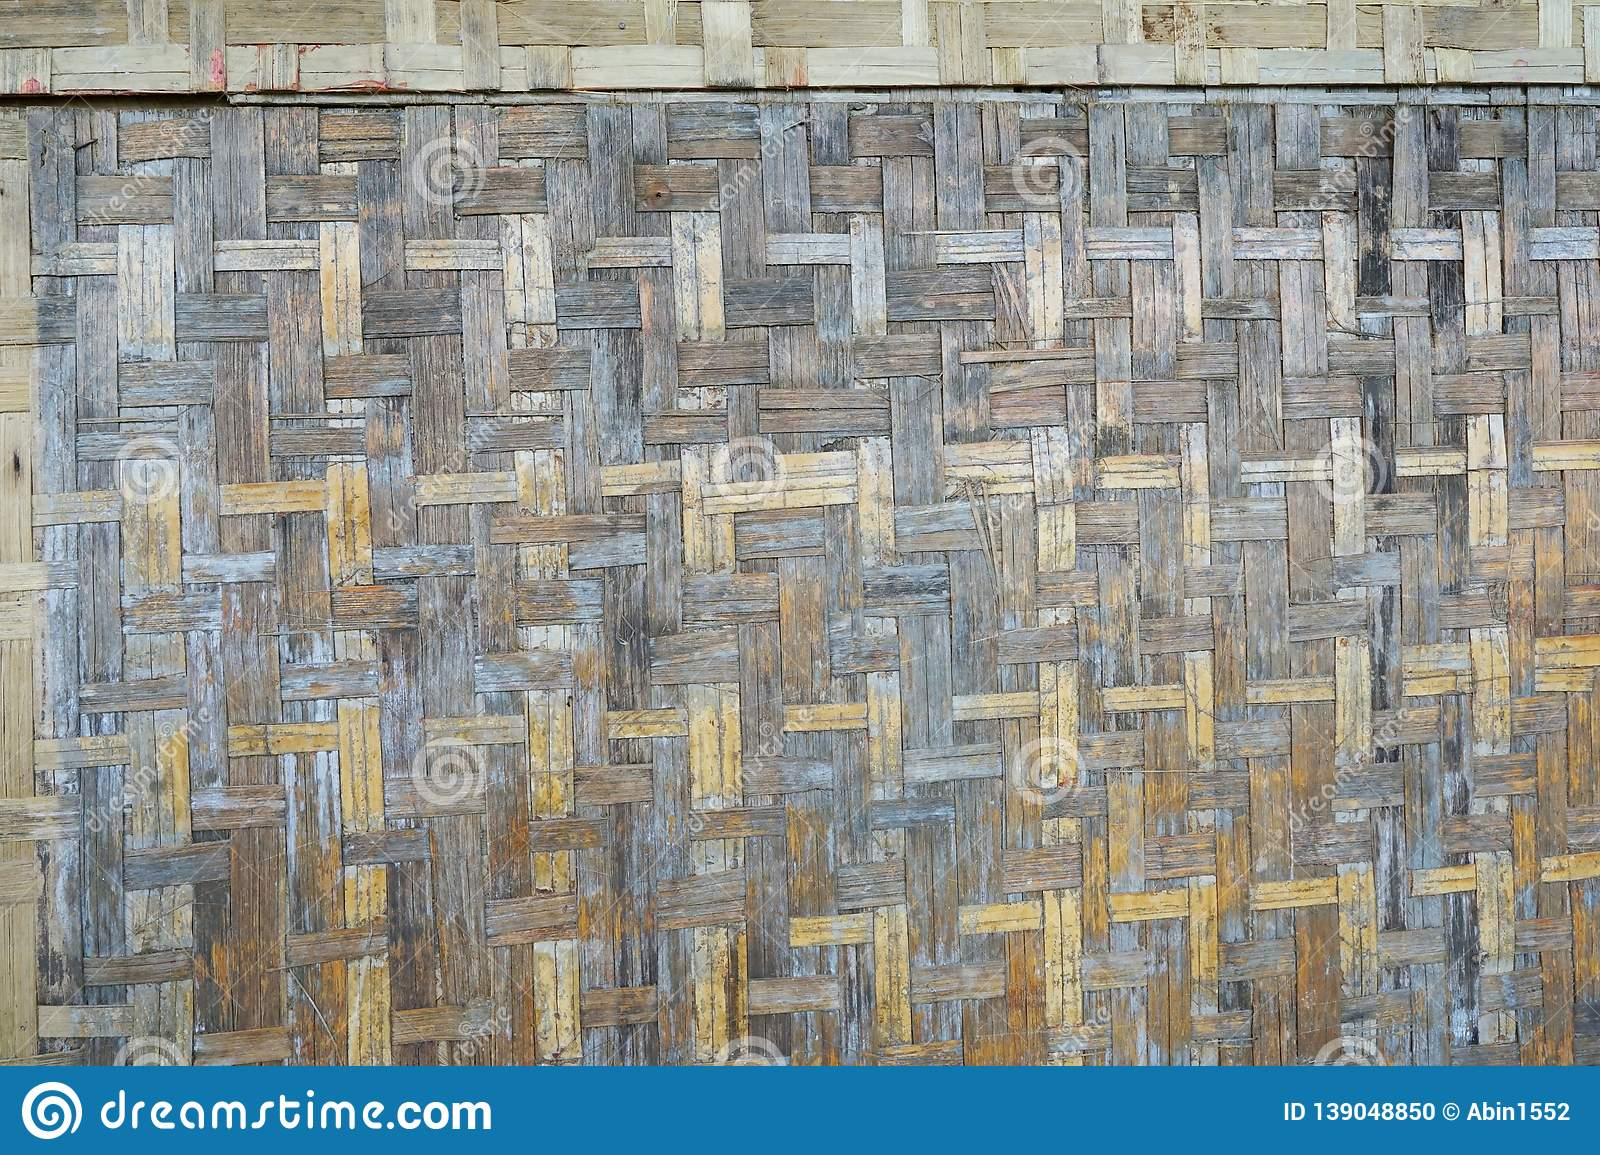 Bamboo handicraft weave are wall as a background